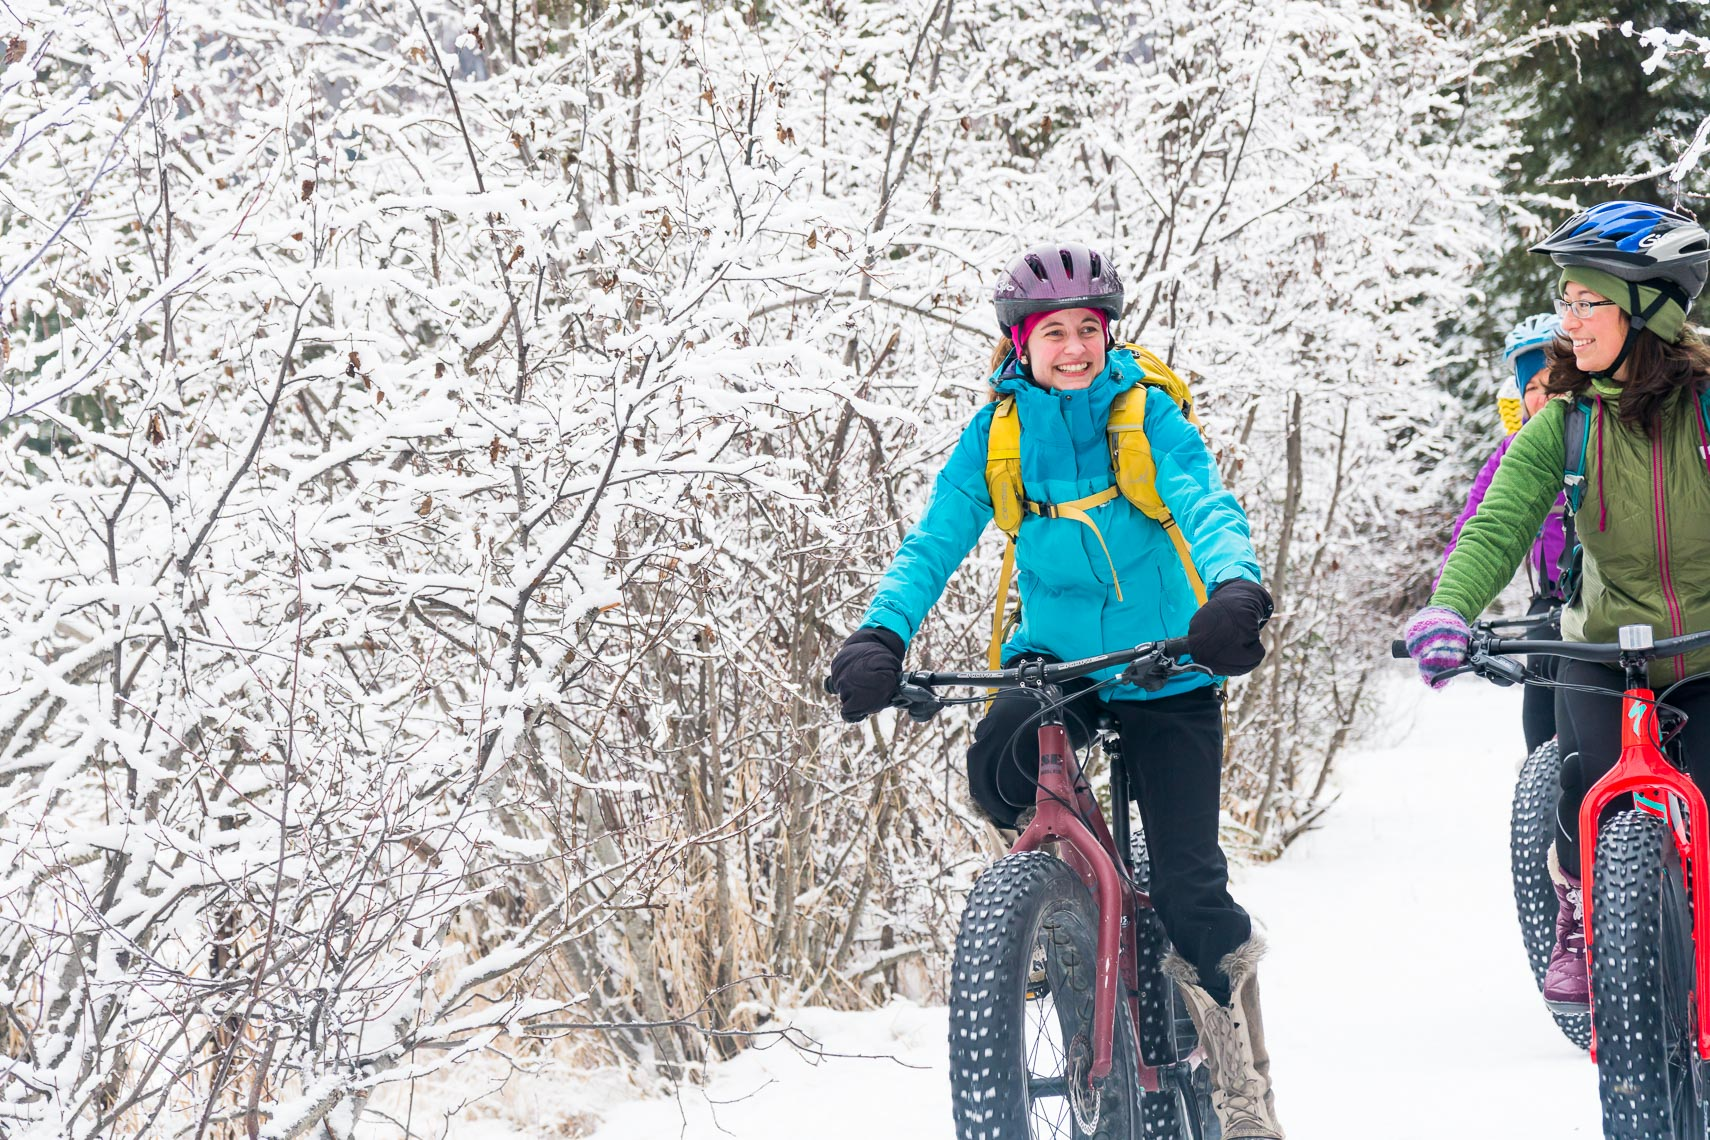 Alaska Winter Fat Tire Biking Friends | Michael DeYoung